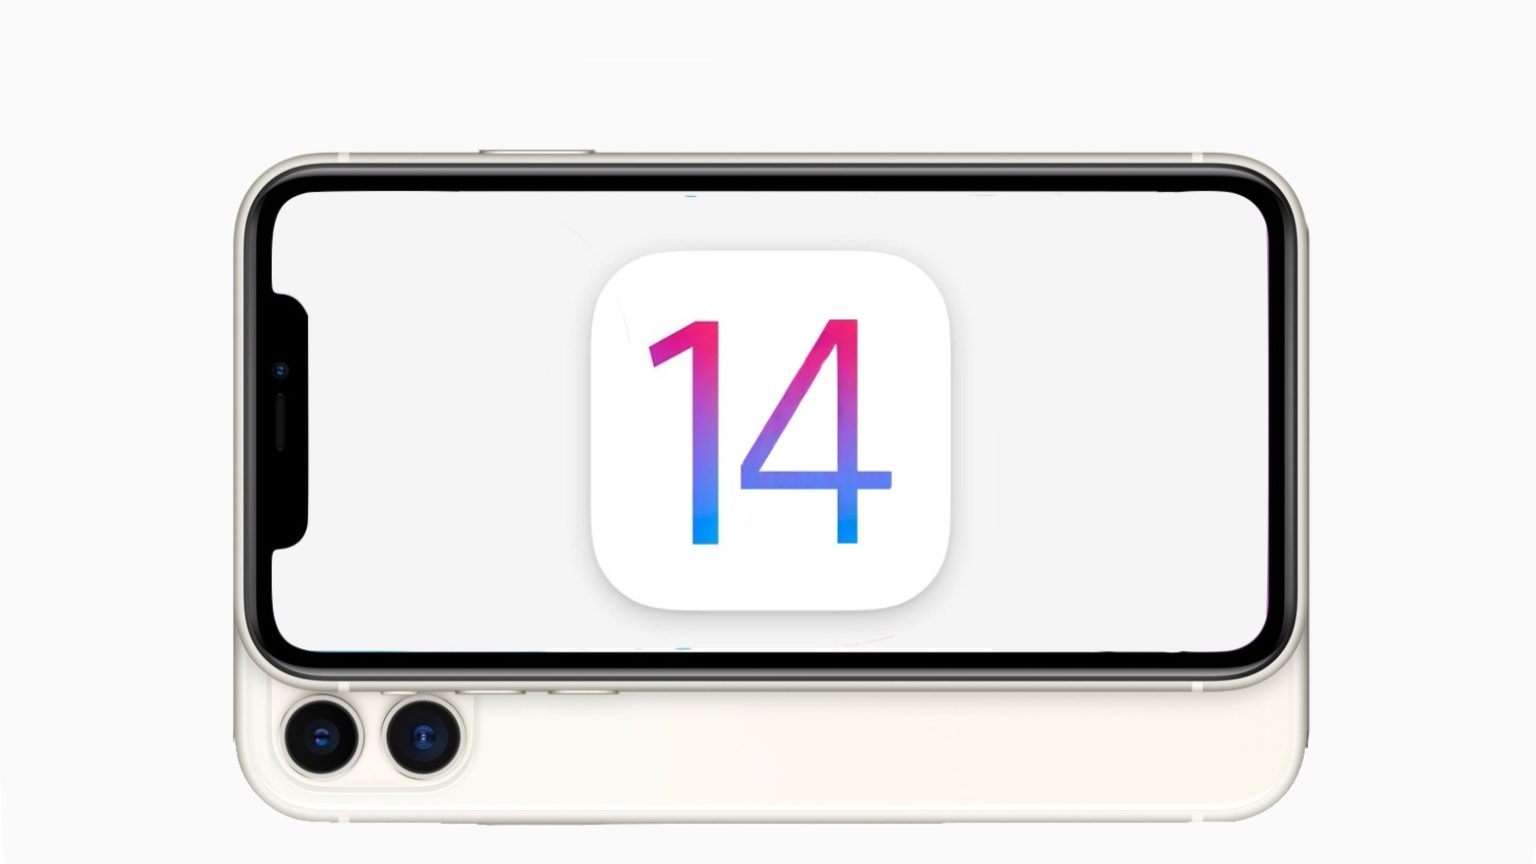 iOS 14 on an iPhone 11